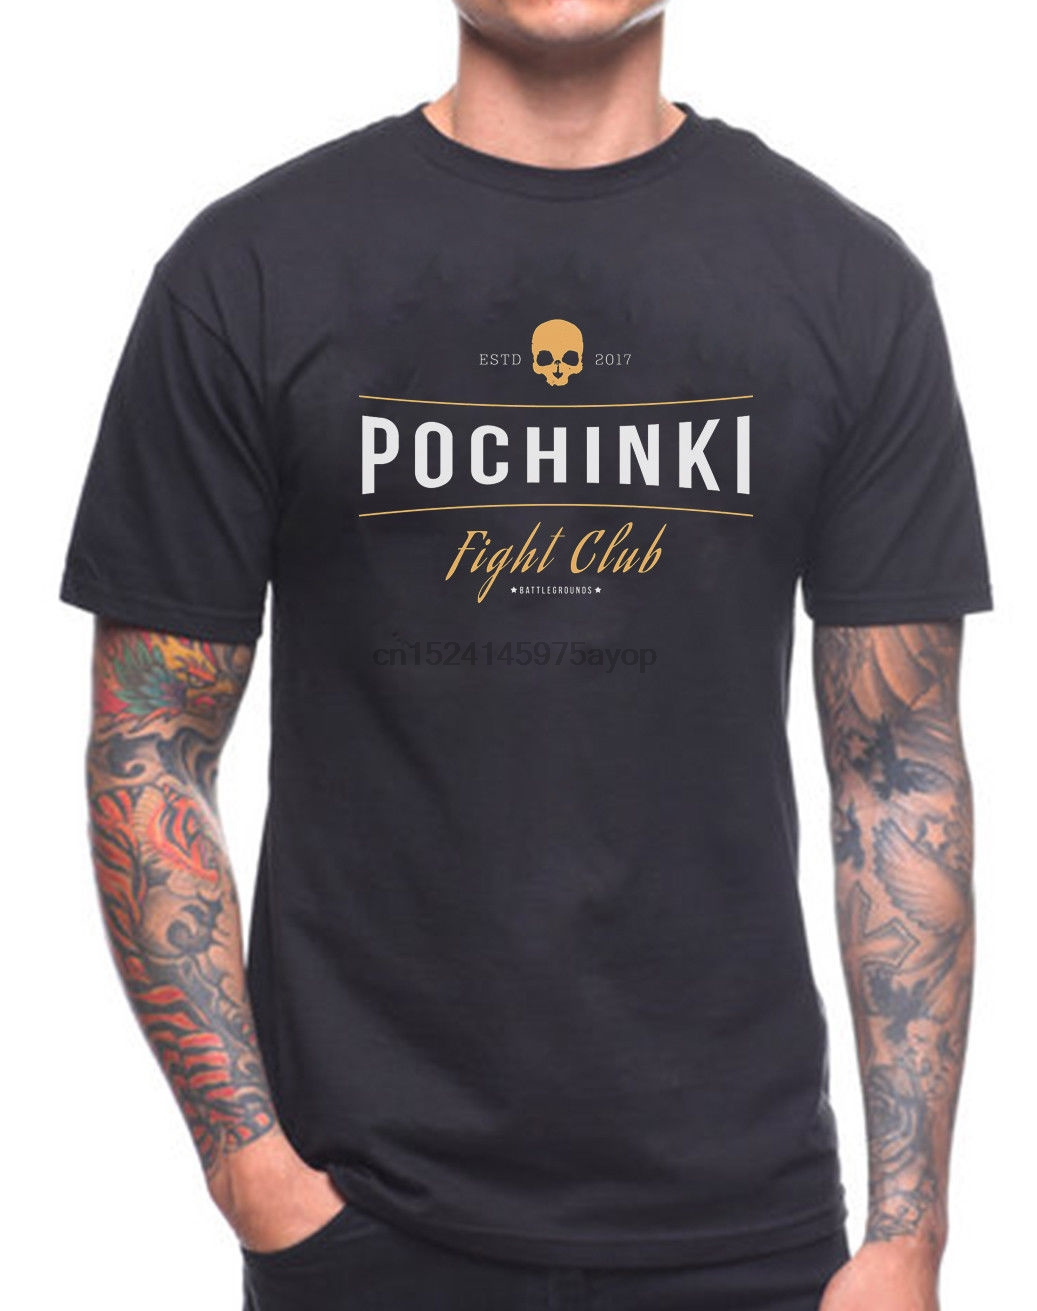 POCHINKI FIGHT CLUB T SHIRT PUBG WINNER WINNER CHICKEN DINNER GAMER GAME Casual Plus Size T-Shirts Hip Hop Style Tops Tee S-3Xl image